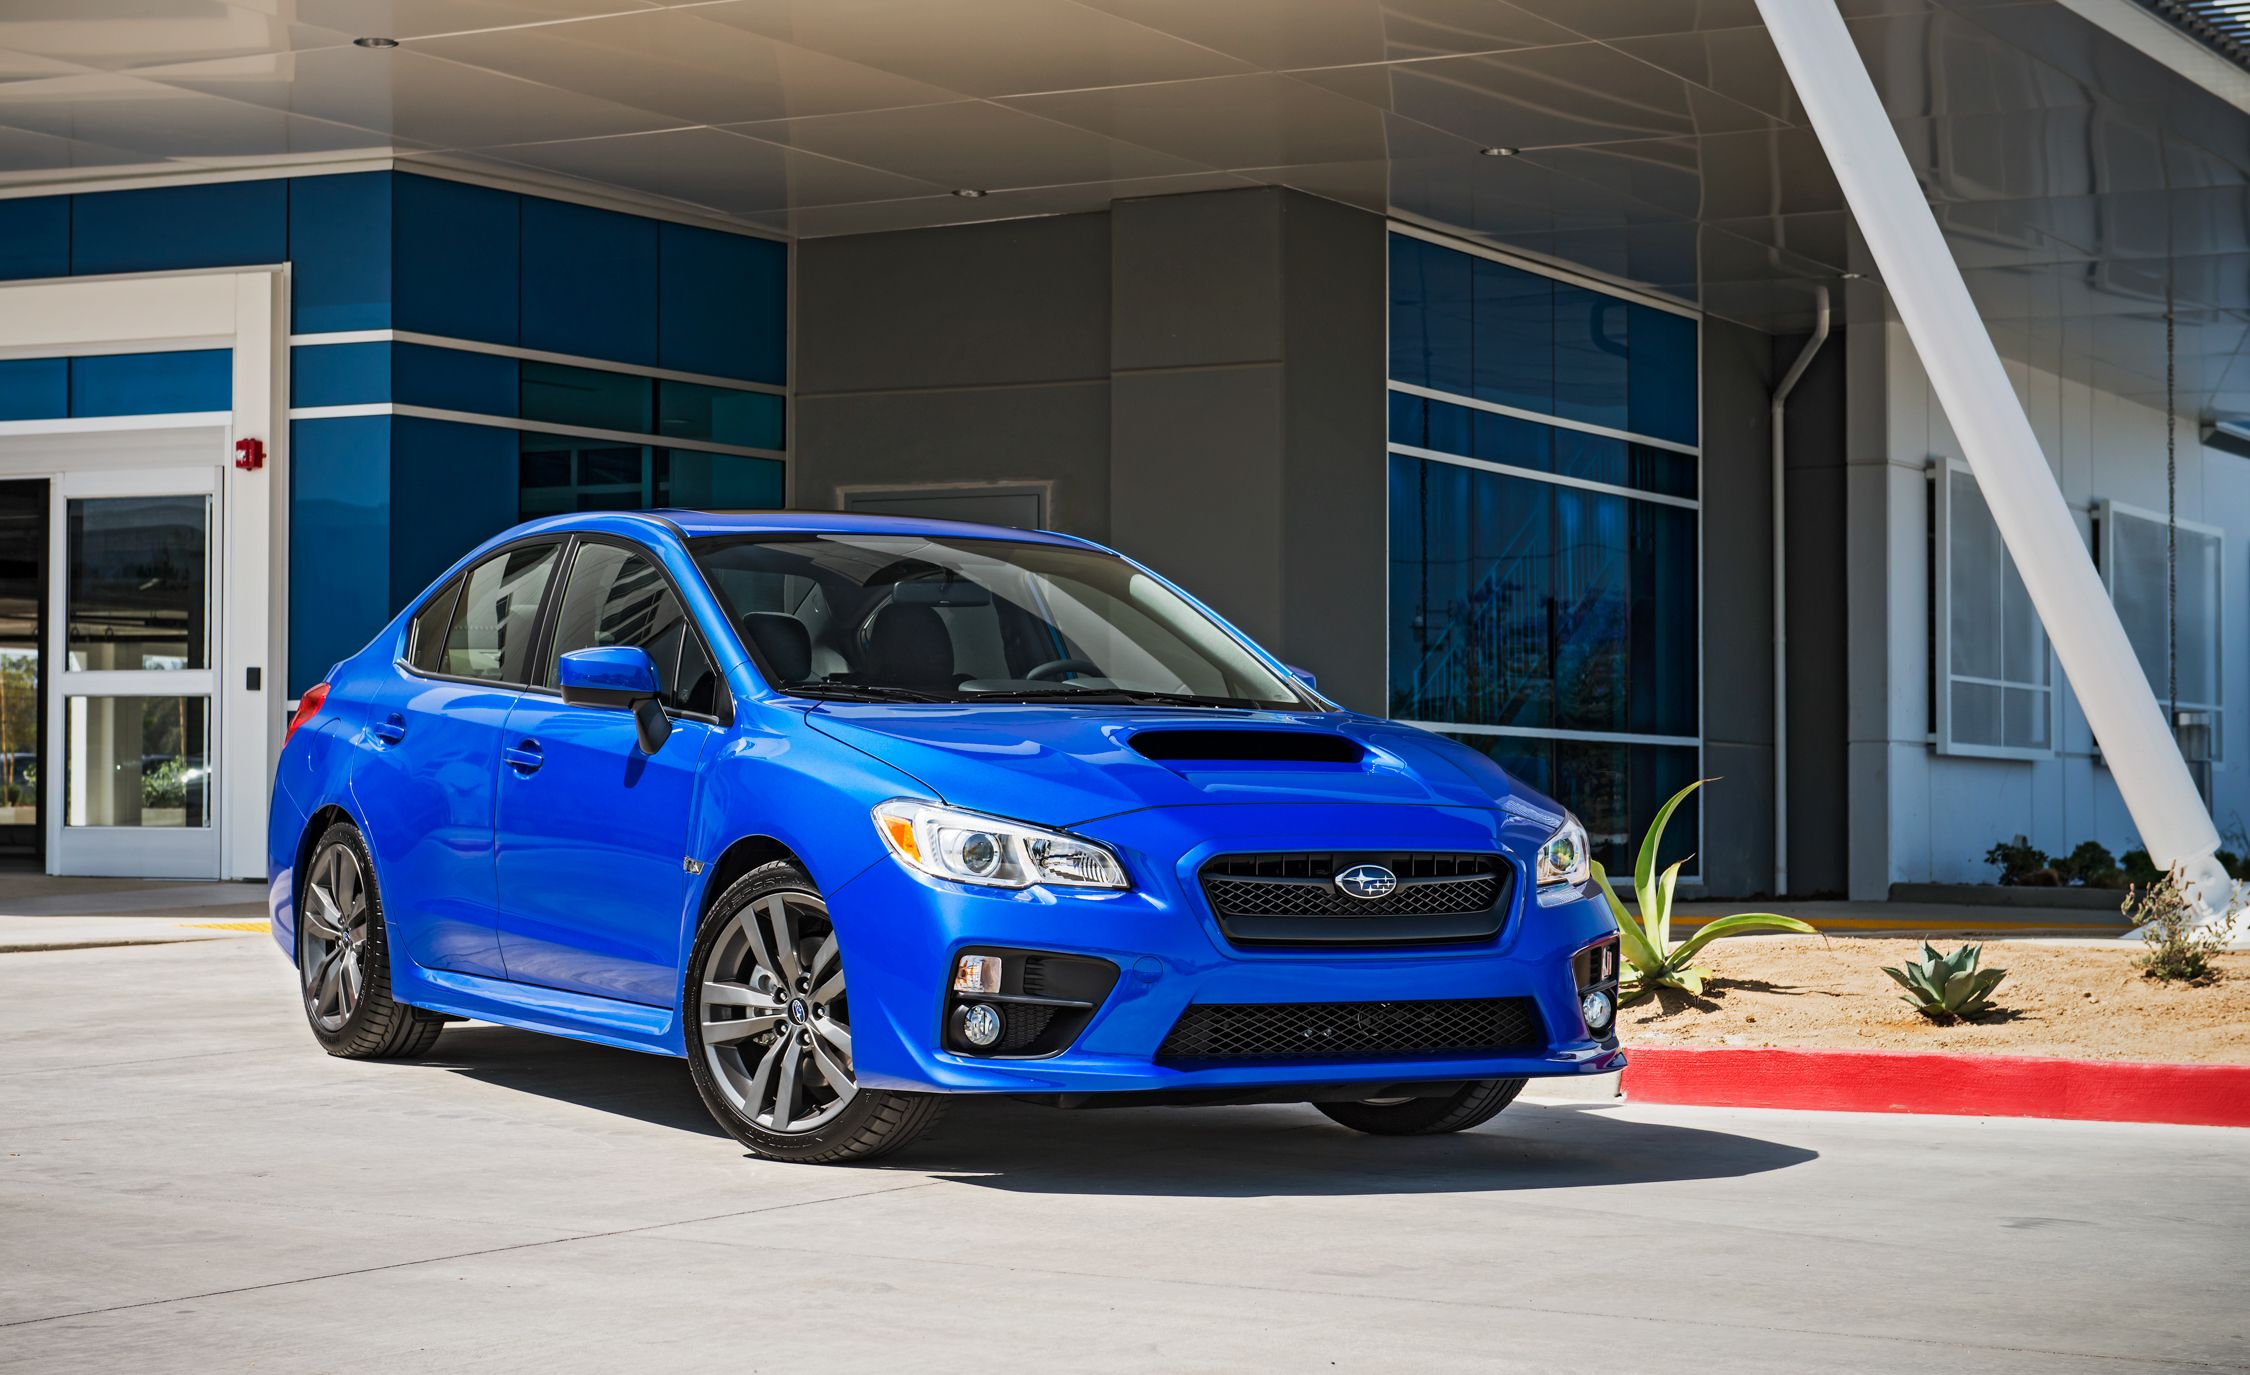 2016 subaru wrx and wrx sti: more luxury, more features – news